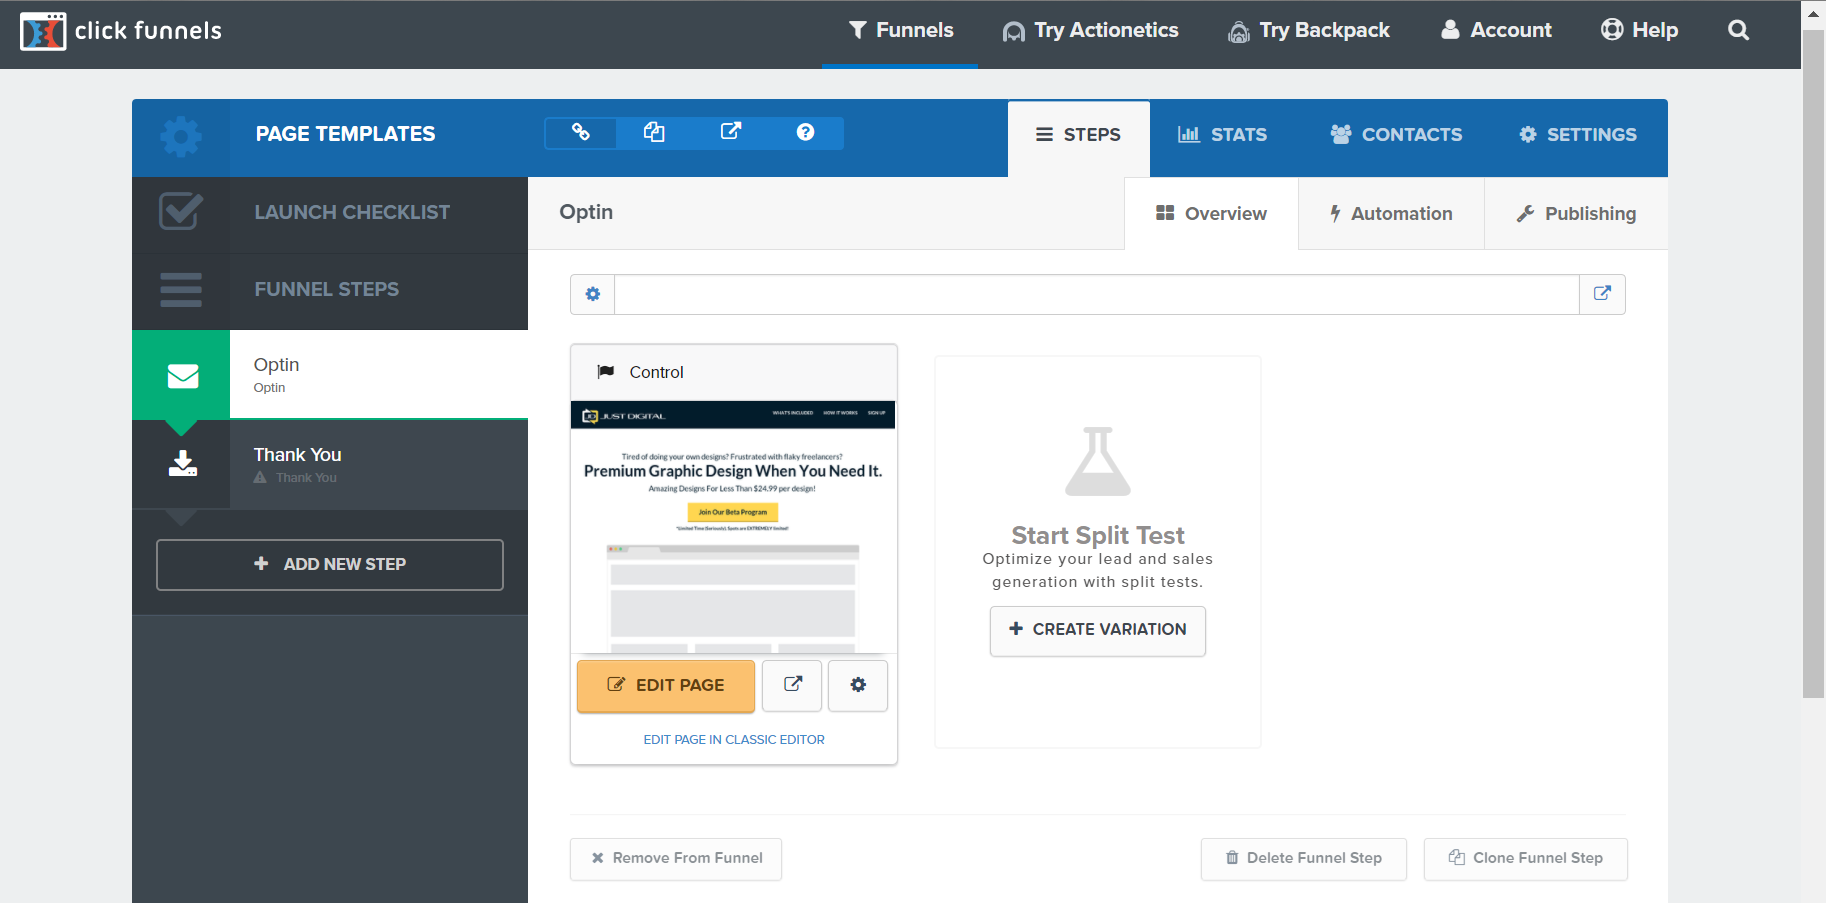 Clickfunnels Review - Page Templates